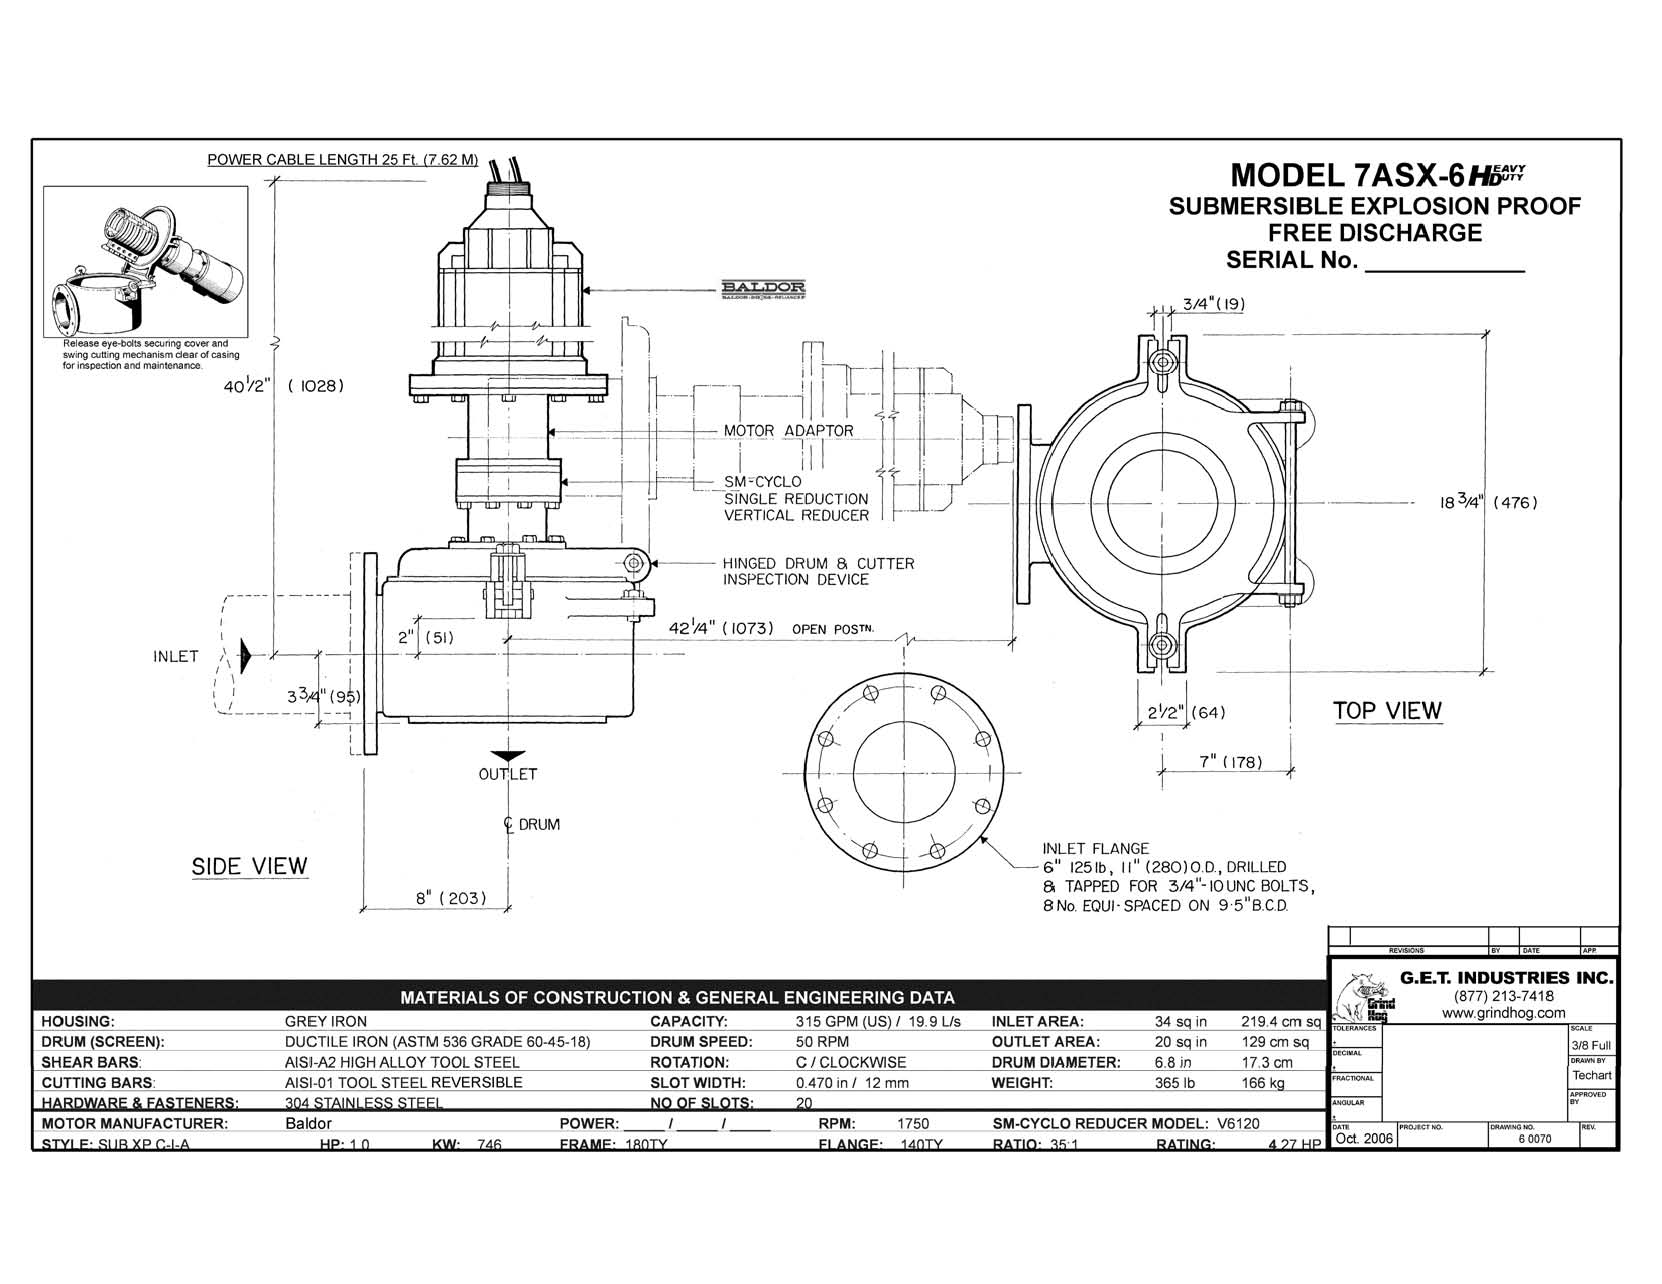 data drawing for Model 7ASX-6